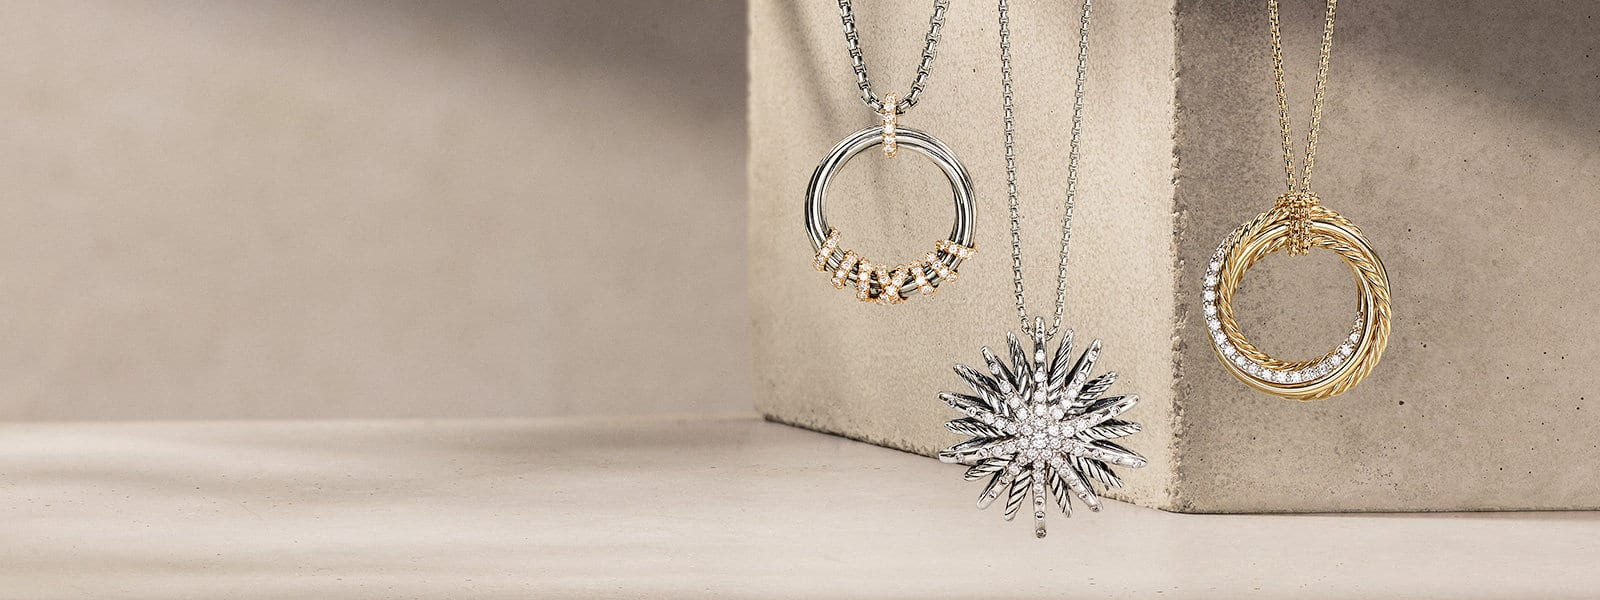 David Yurman Helena, Starburst and Crossover pendant necklaces in sterling silver with 18K yellow gold with pavé diamonds, sterling silver with pavé diamonds or 18K yellow gold with pavé diamonds hanging above a light pink textured stone with long shadows.